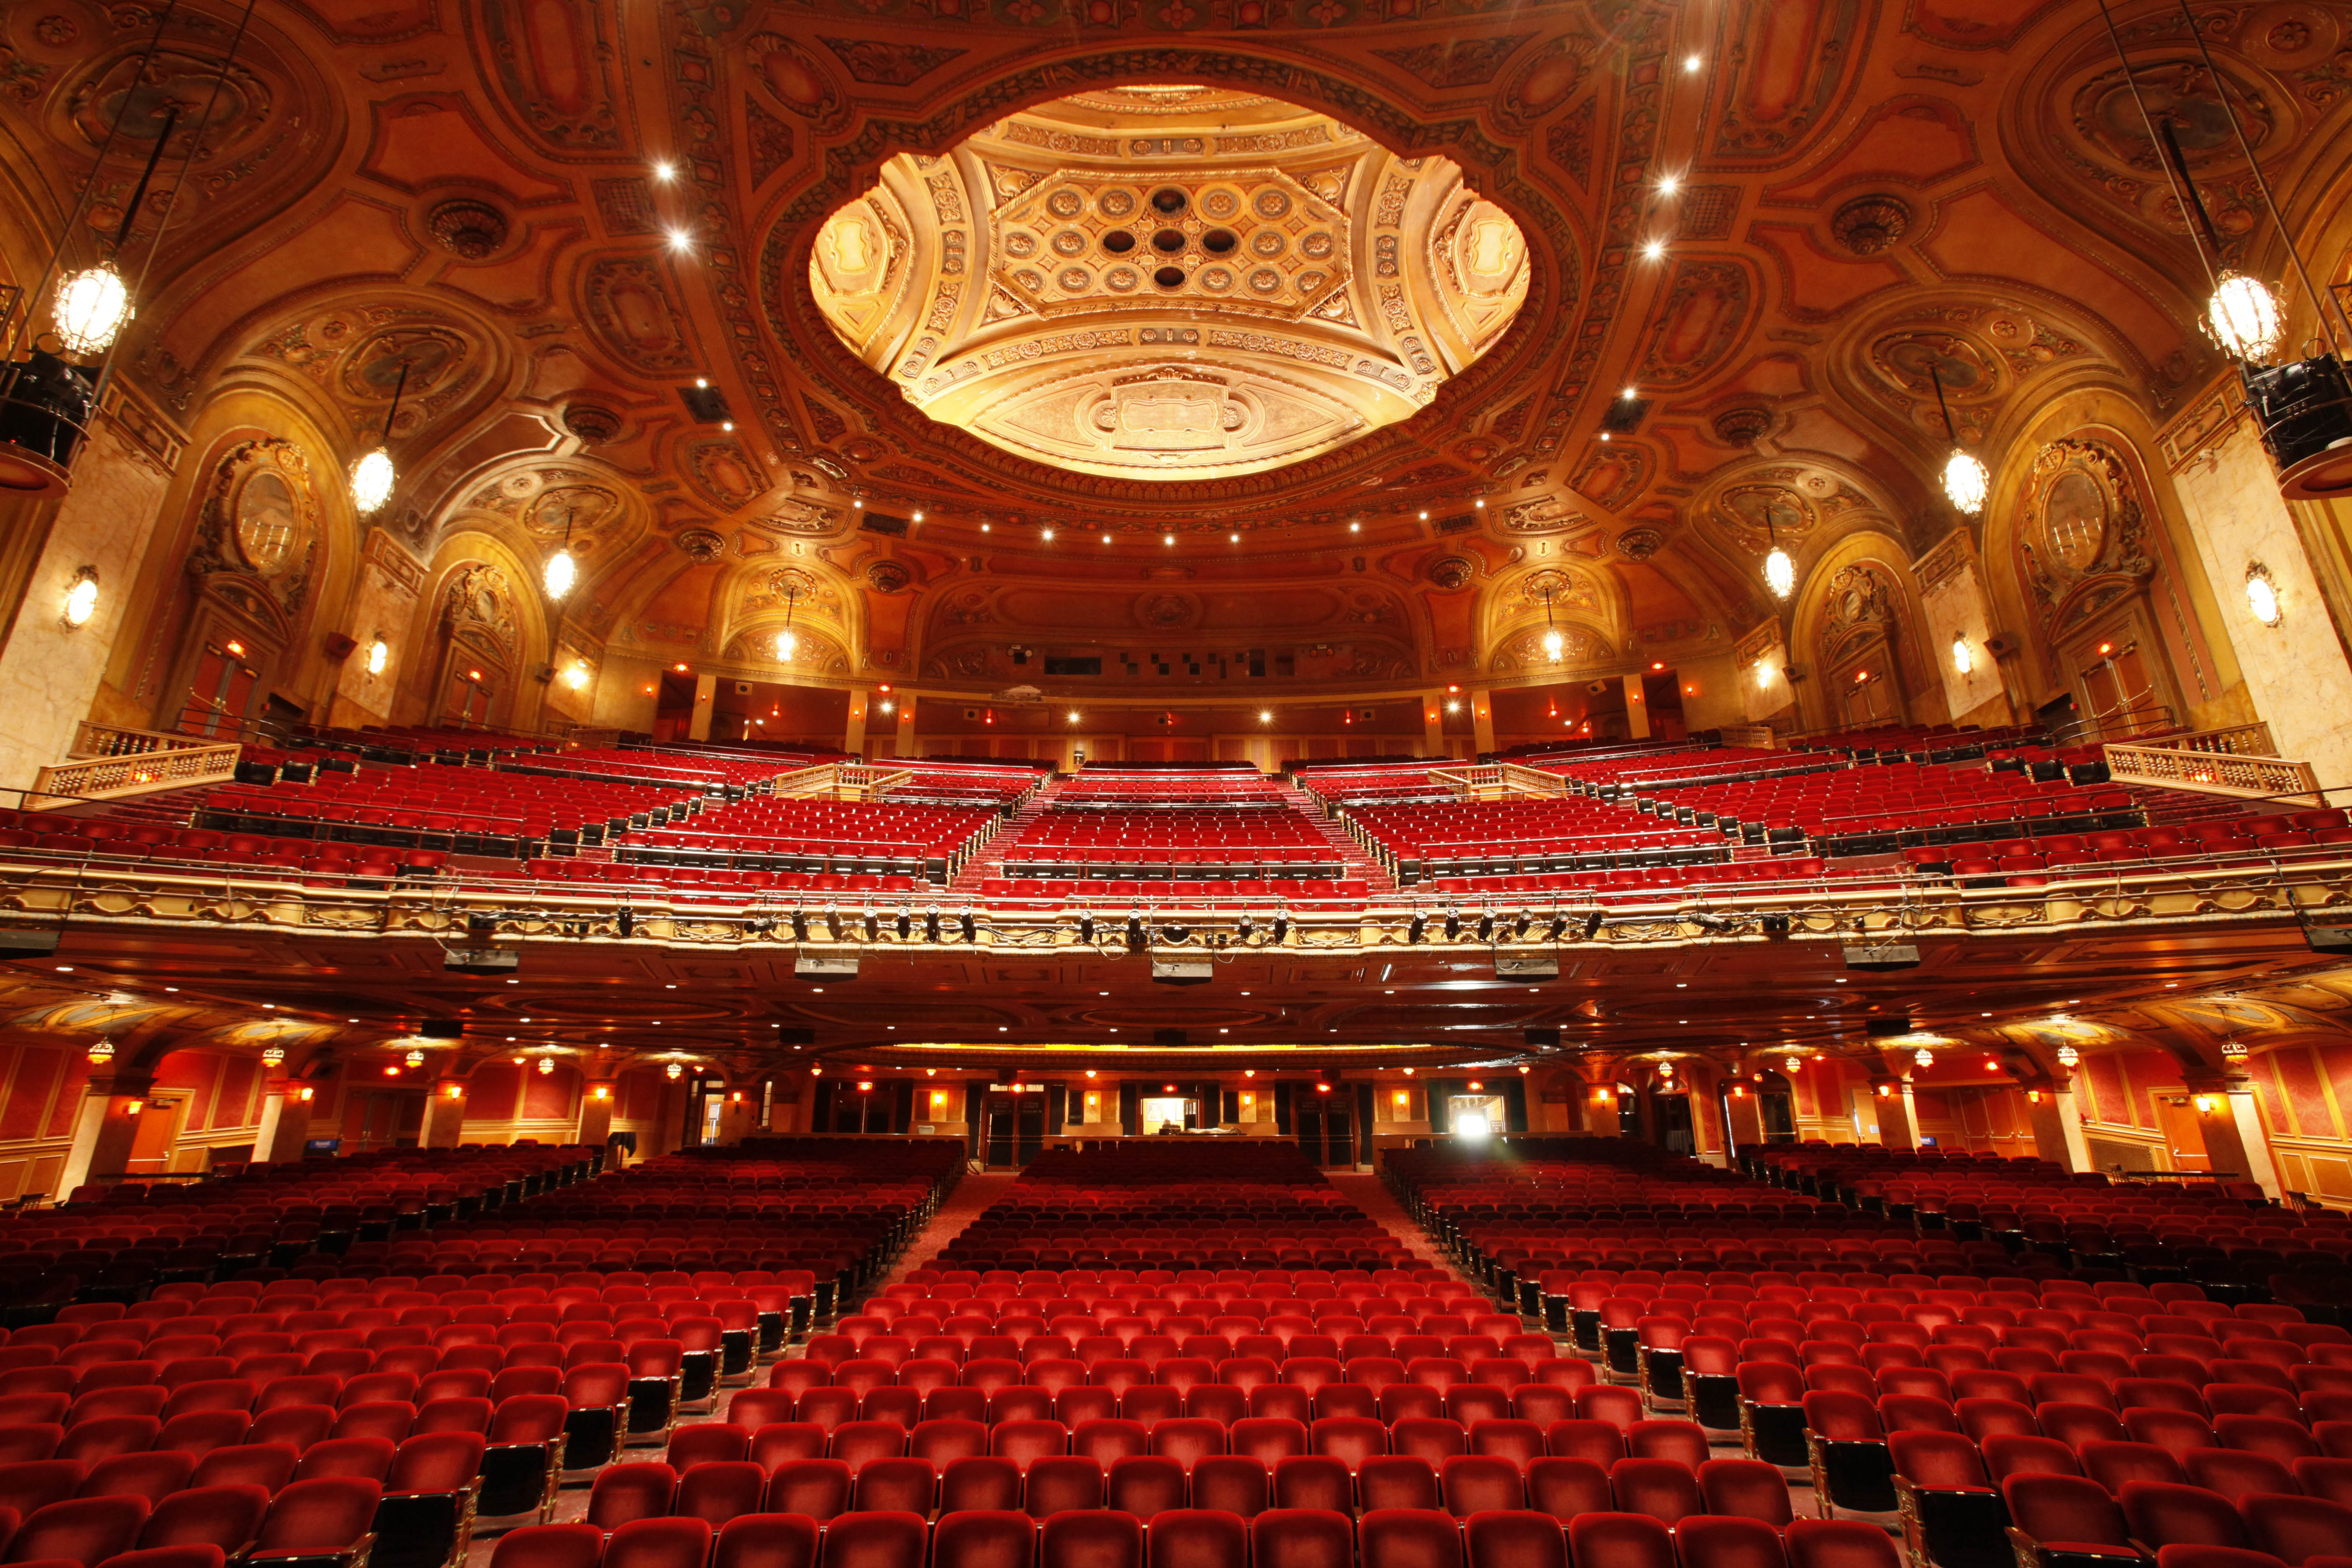 Timeless beauty: Shea's Performing Arts Center, opened in 1926 and saved from the wrecking ball in the 1970s, is looking better than ever thanks to a $15 million restoration project.